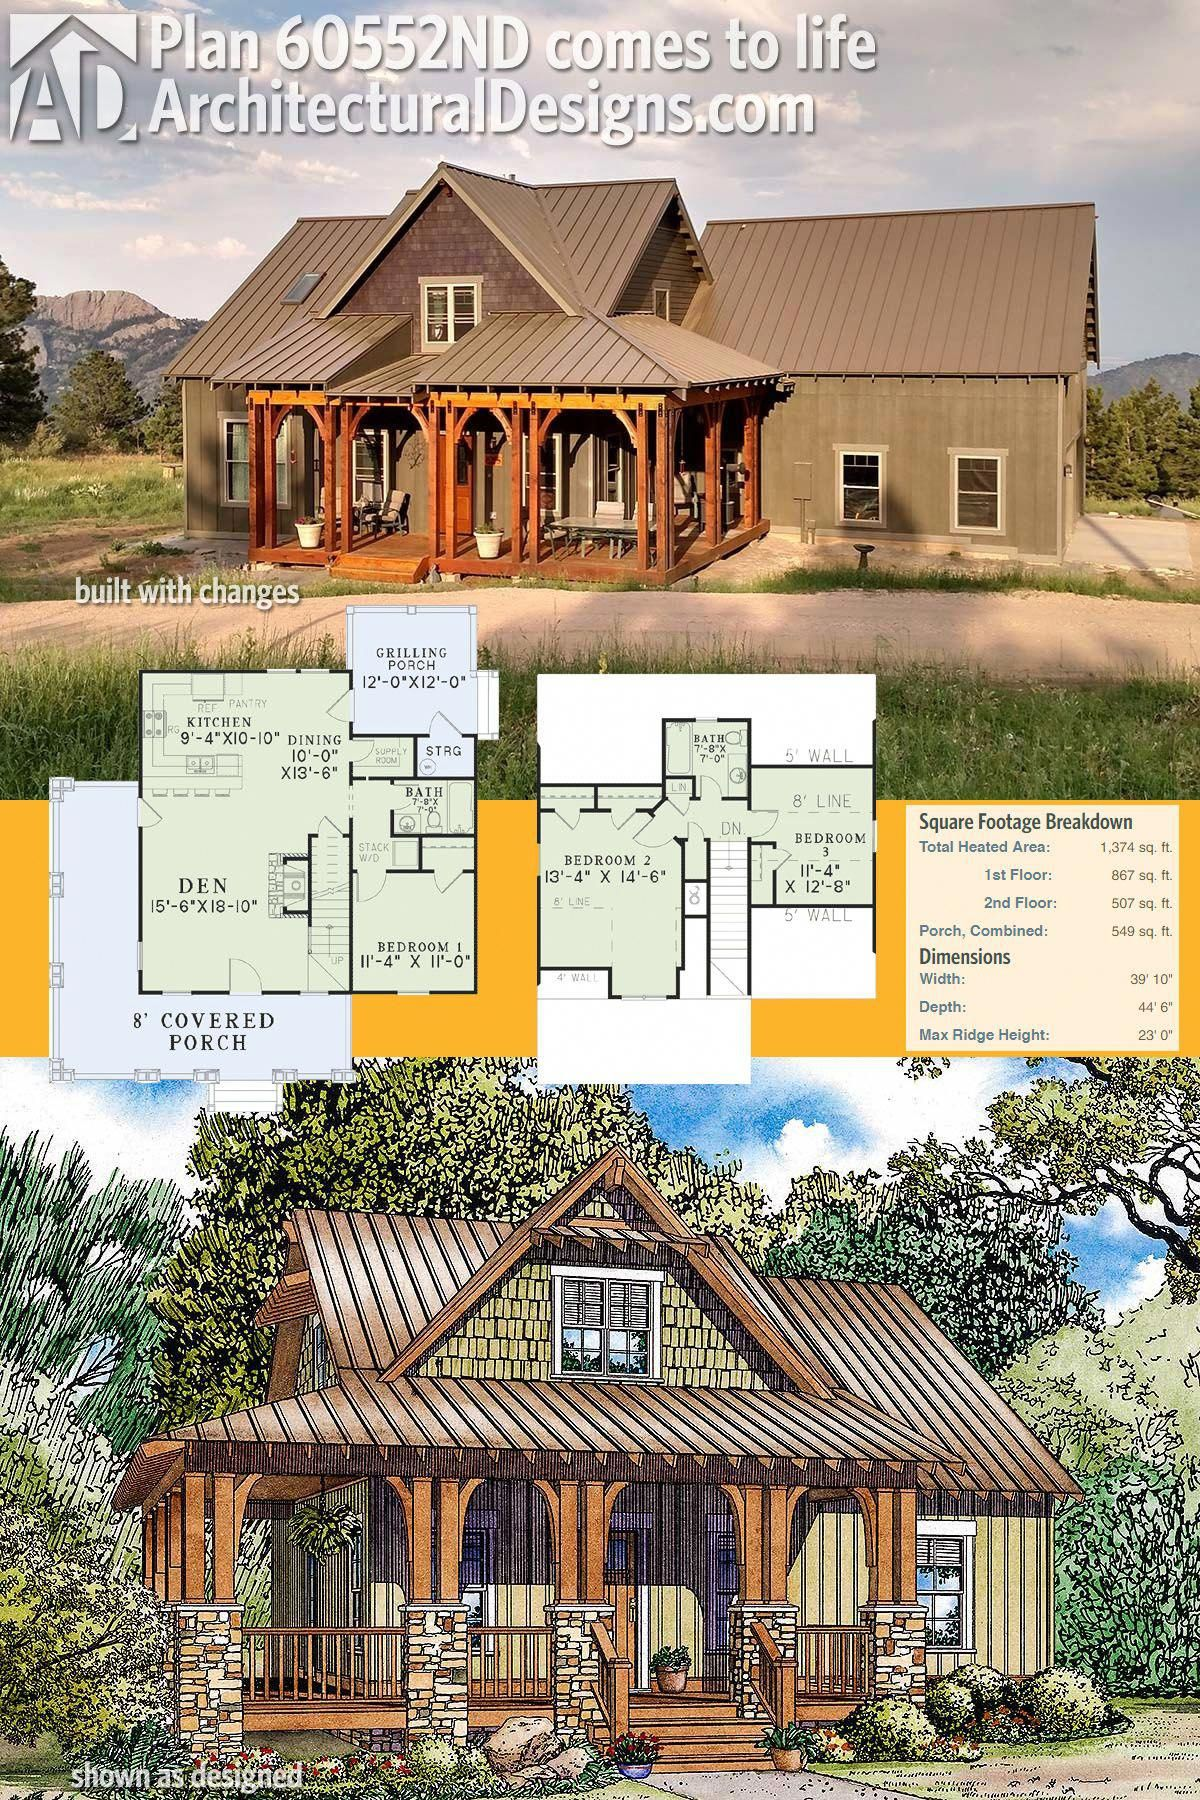 Architectural Designs Rustic House Plan 60552ND comes to ...